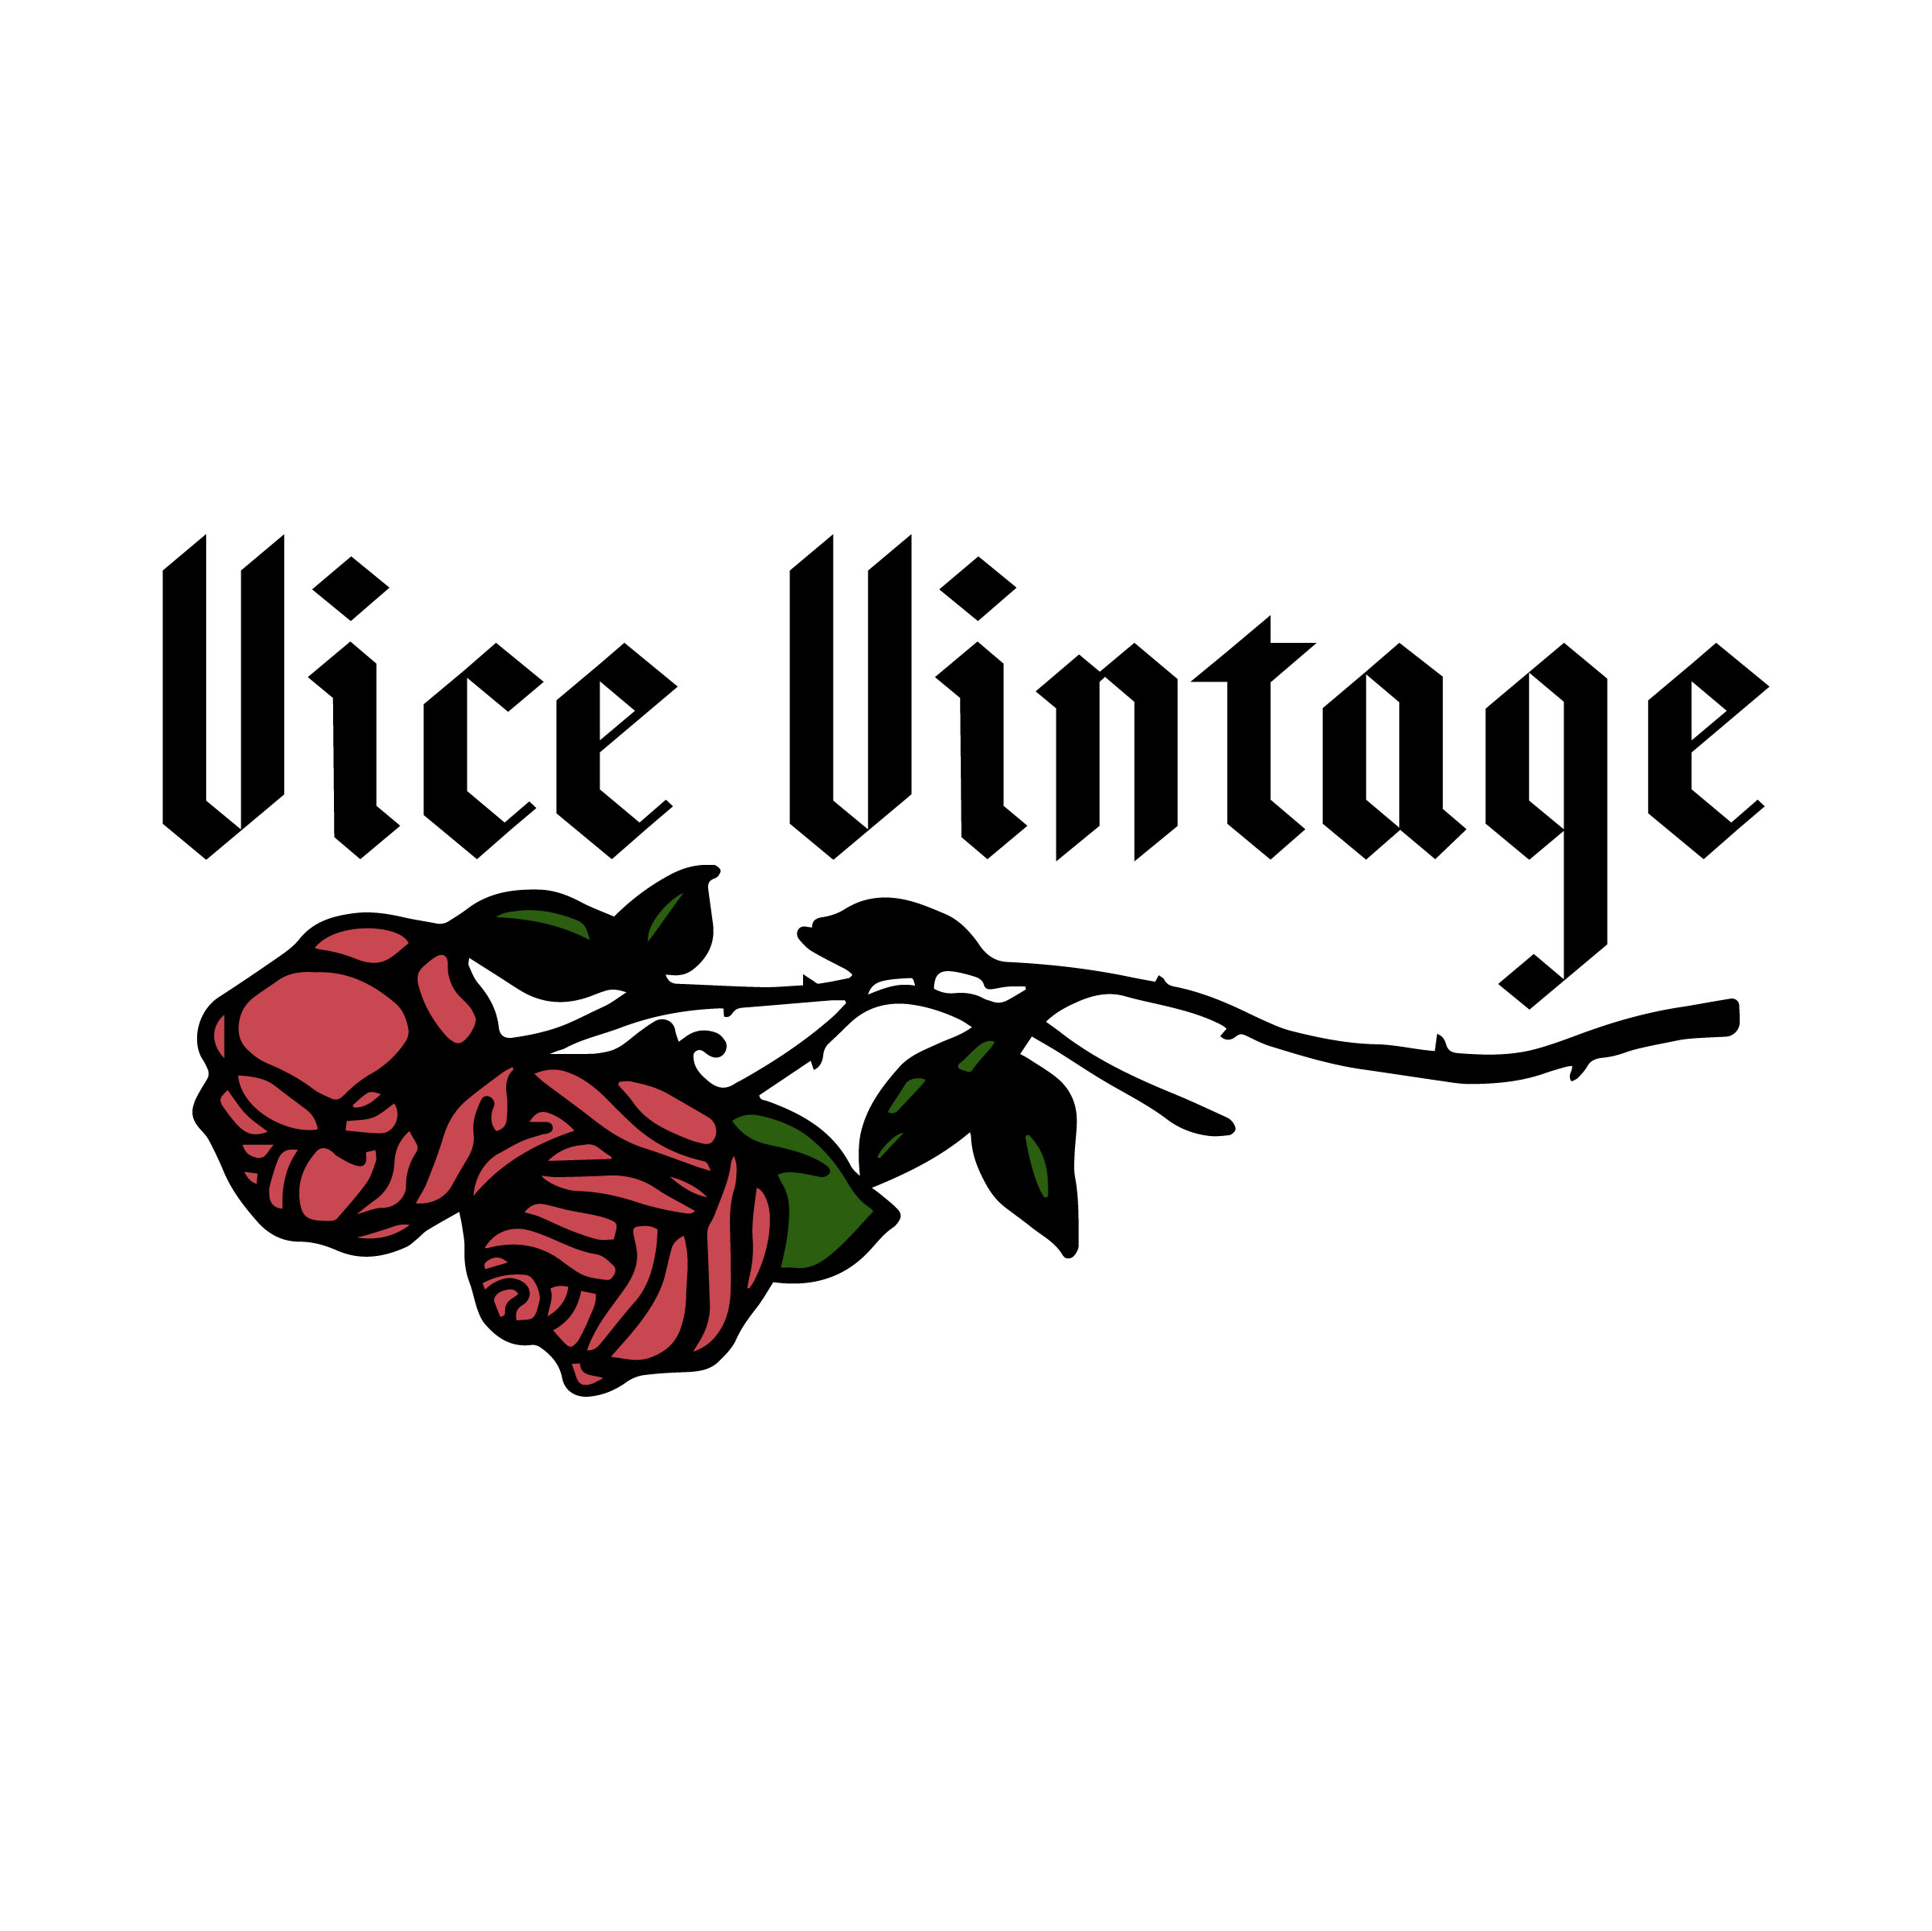 vice_vintage_working-1-08.jpg